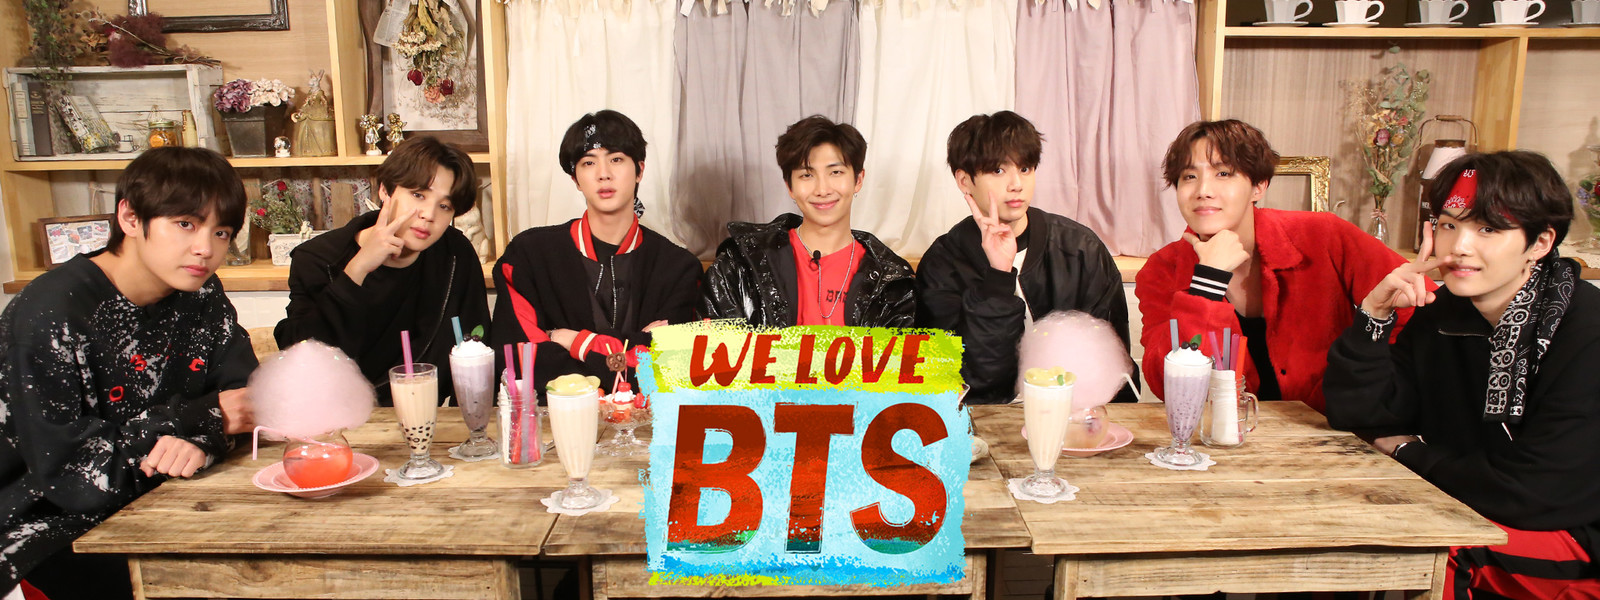 We Love BTS画像